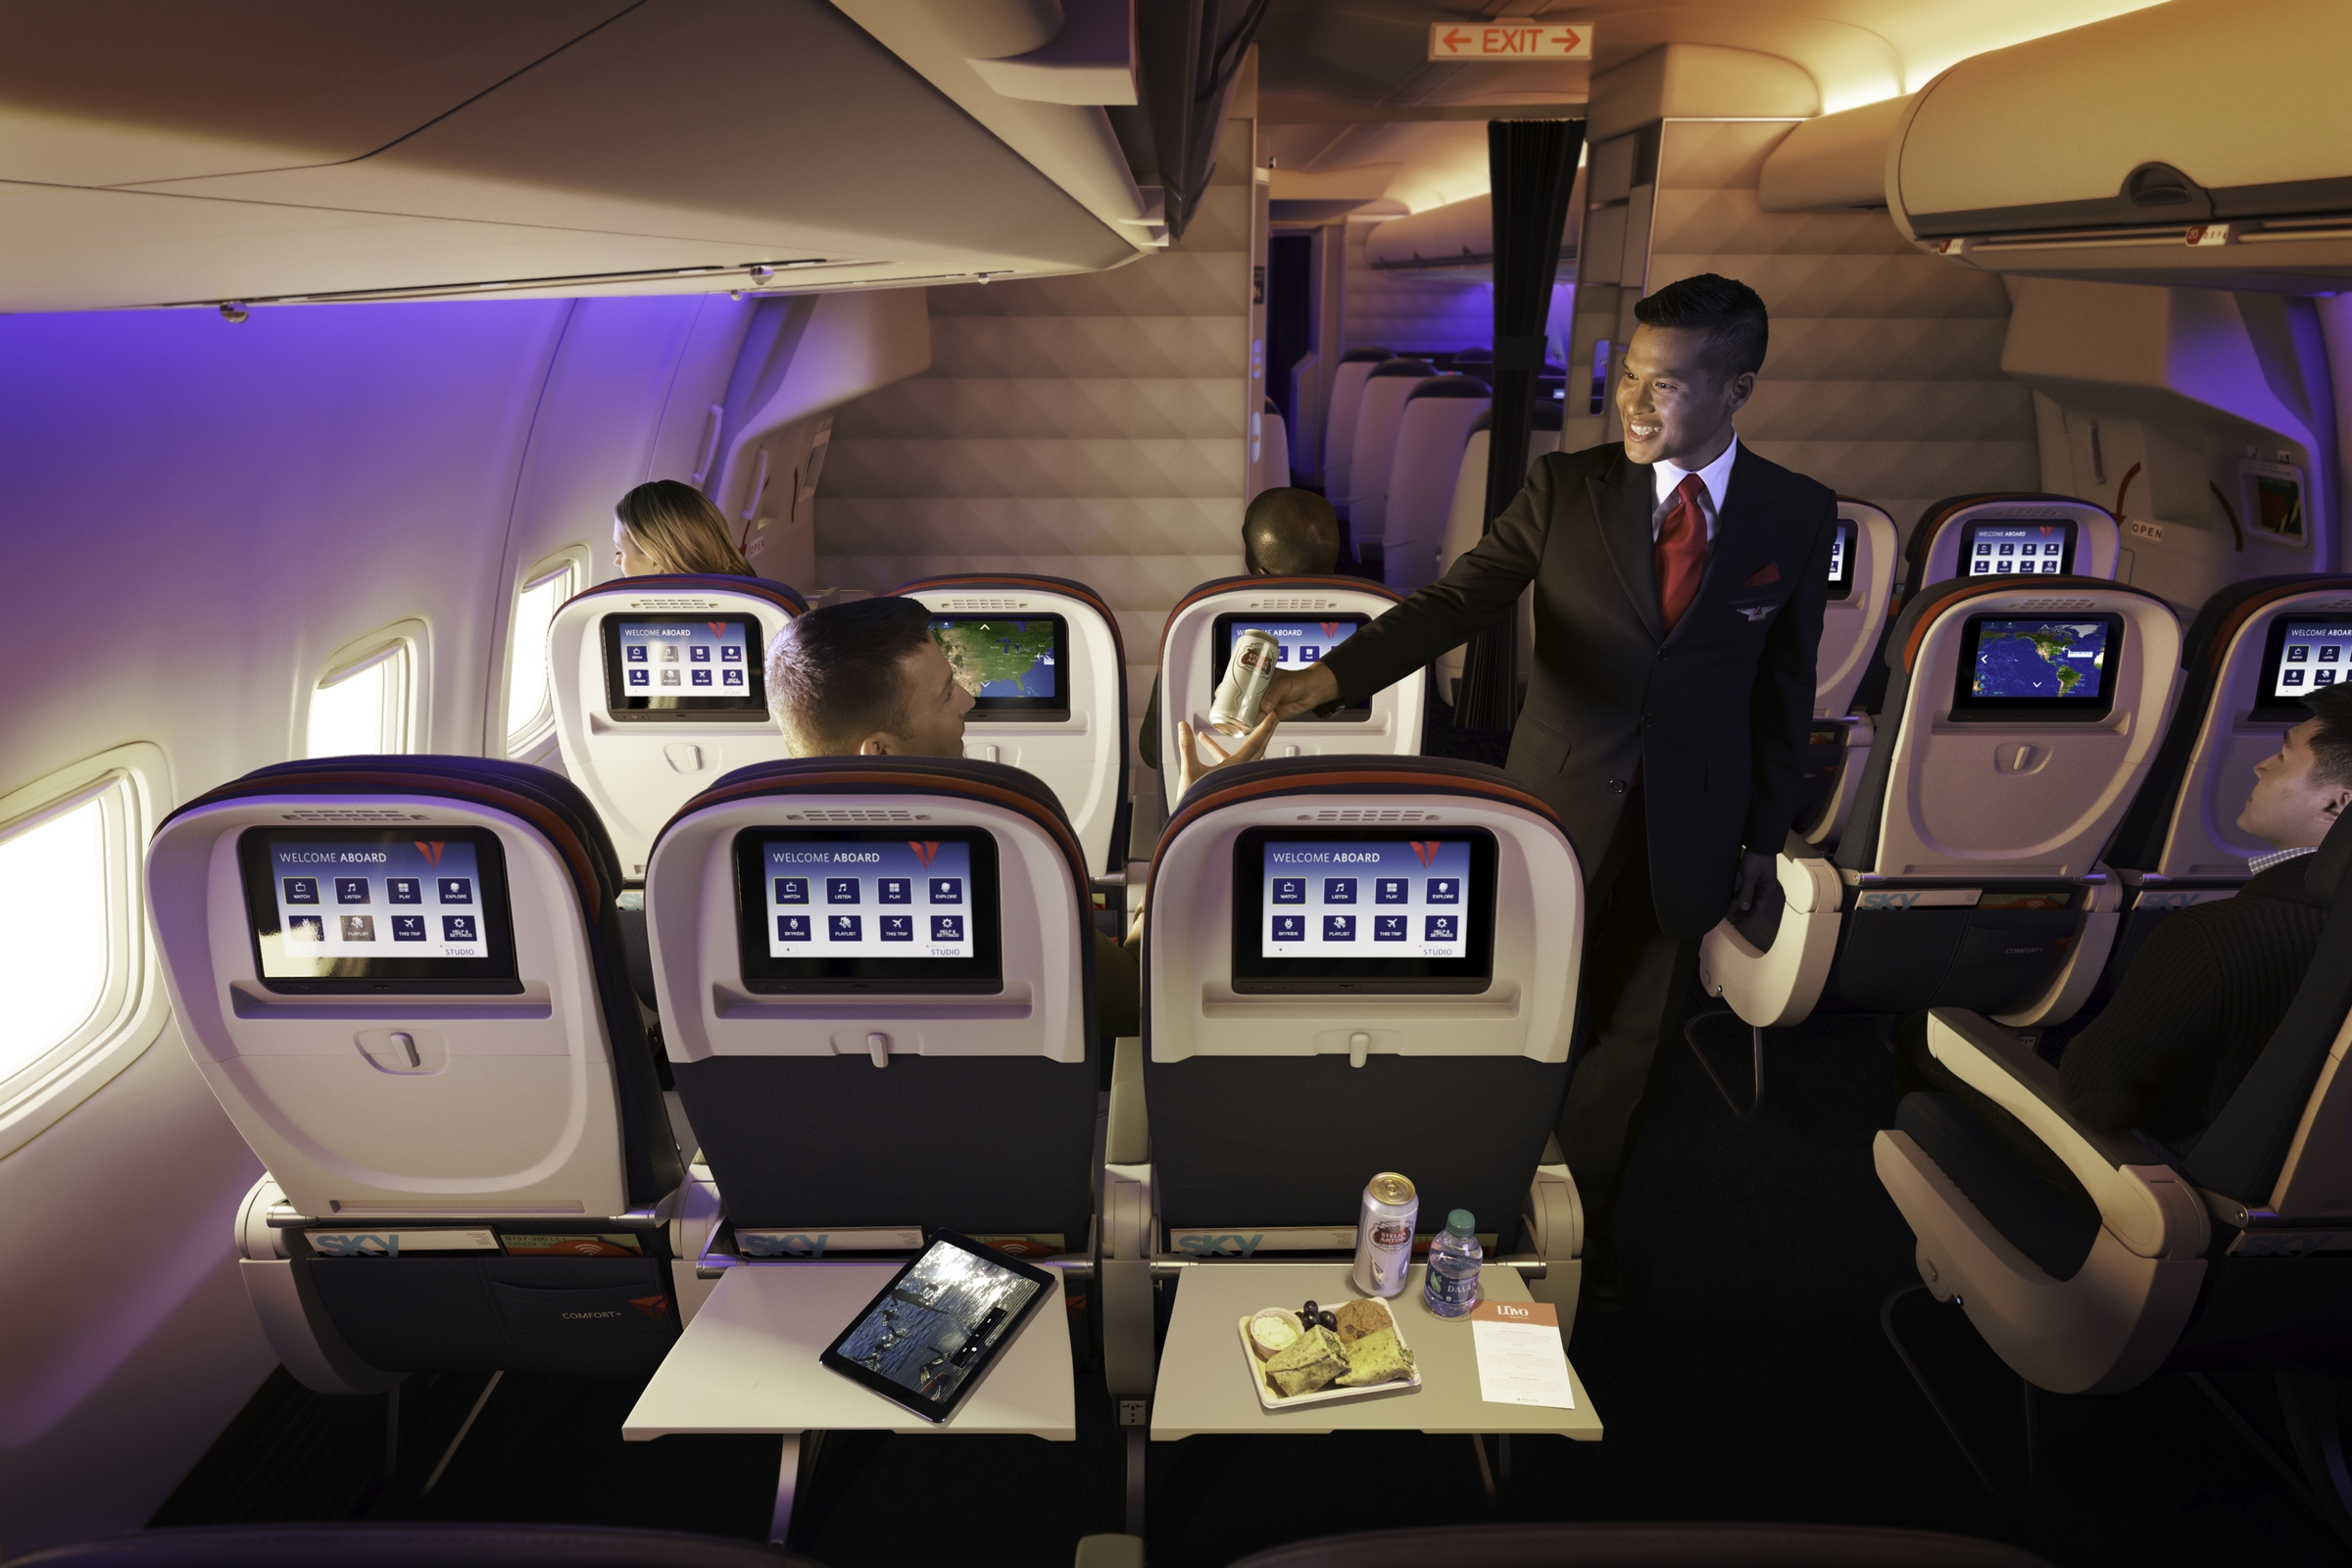 Delta Comfort+ is now bookable as a fare for flights starting May 16,2006